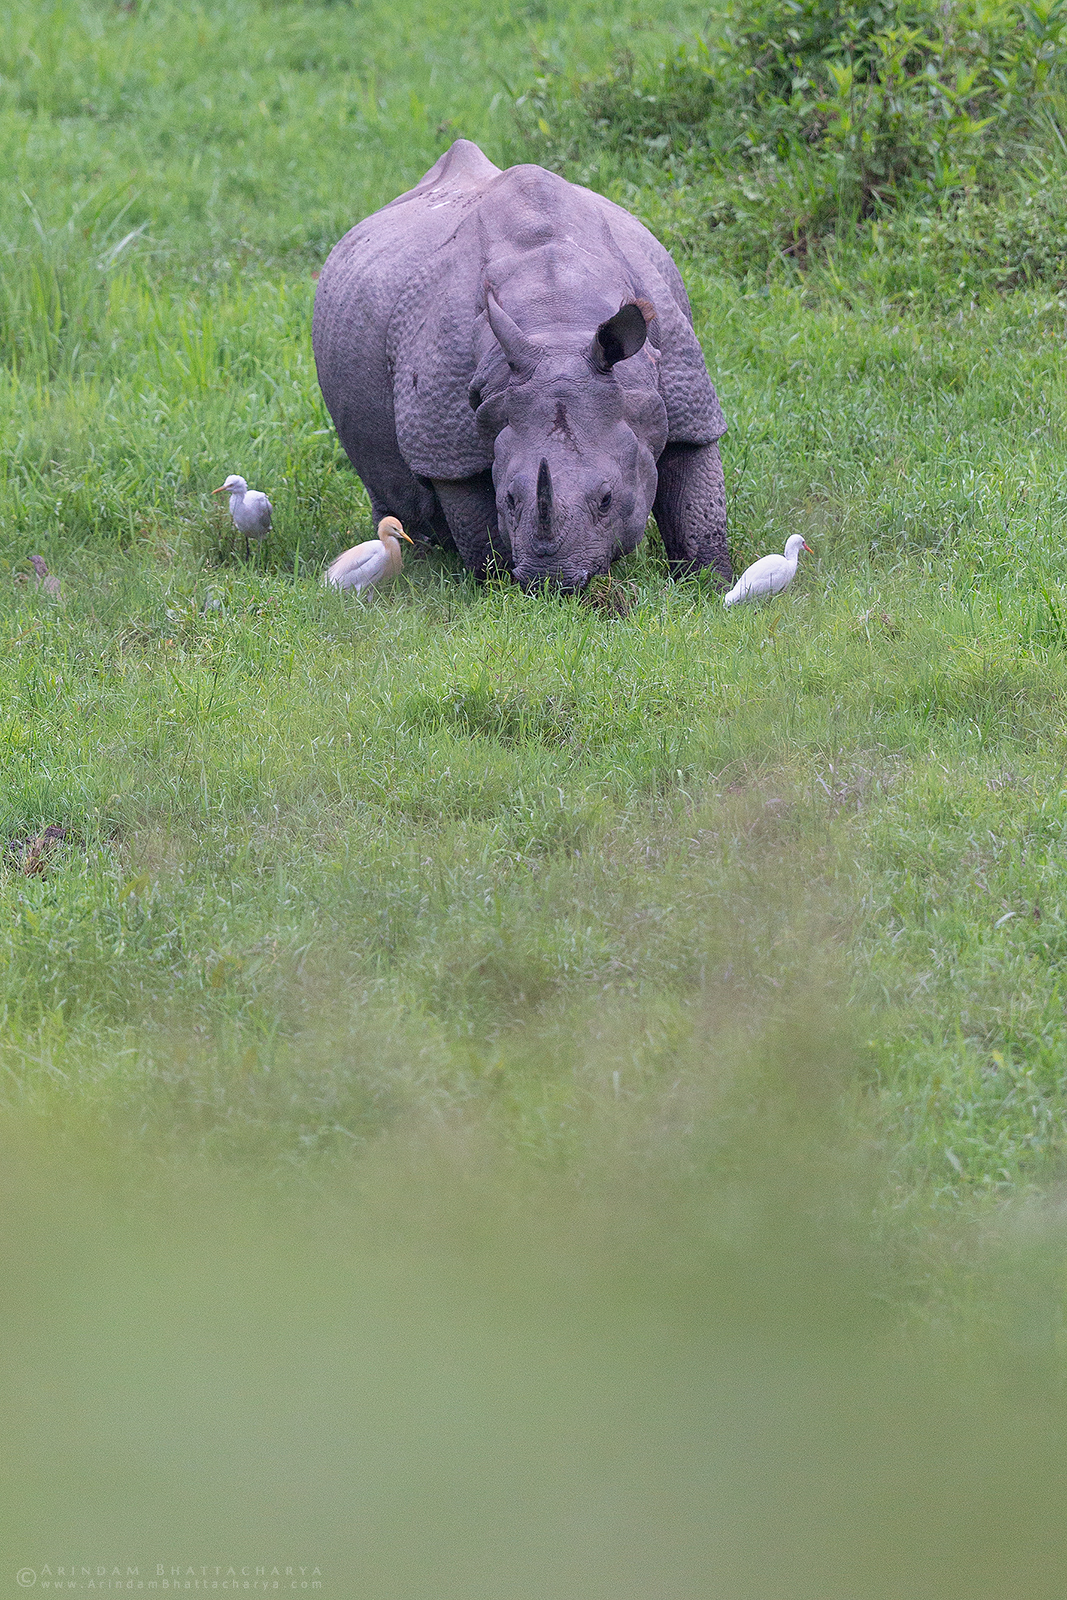 Indian one-horned rhinoceros in Gorumara National Park Dooars West Bengal India